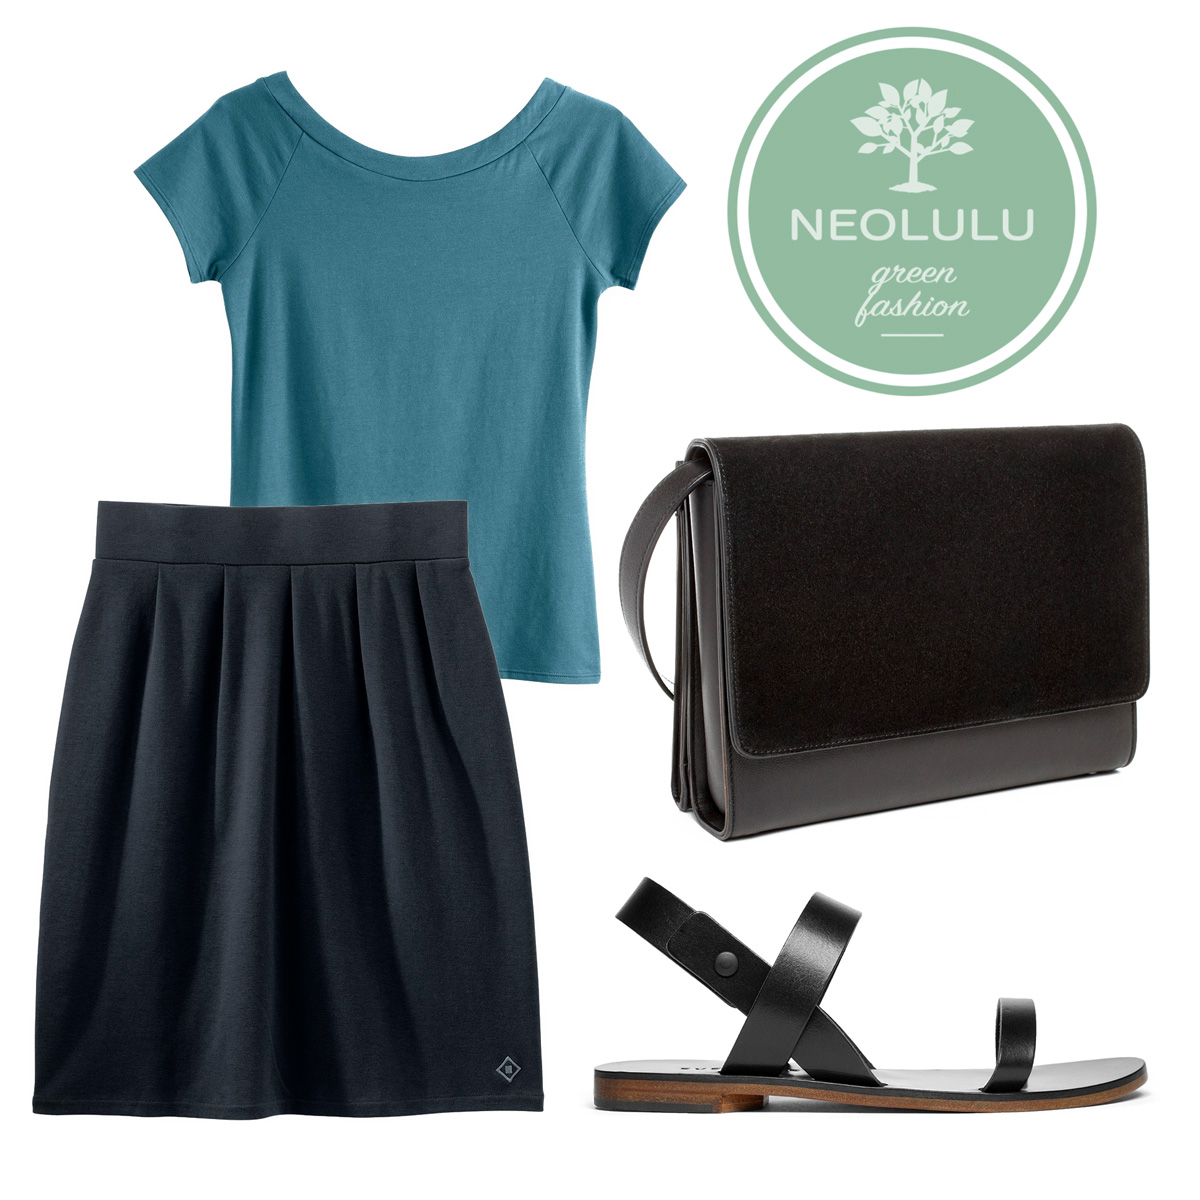 Everyday Chic: Top & Skirt Outfit with Sustainable Organic Cotton